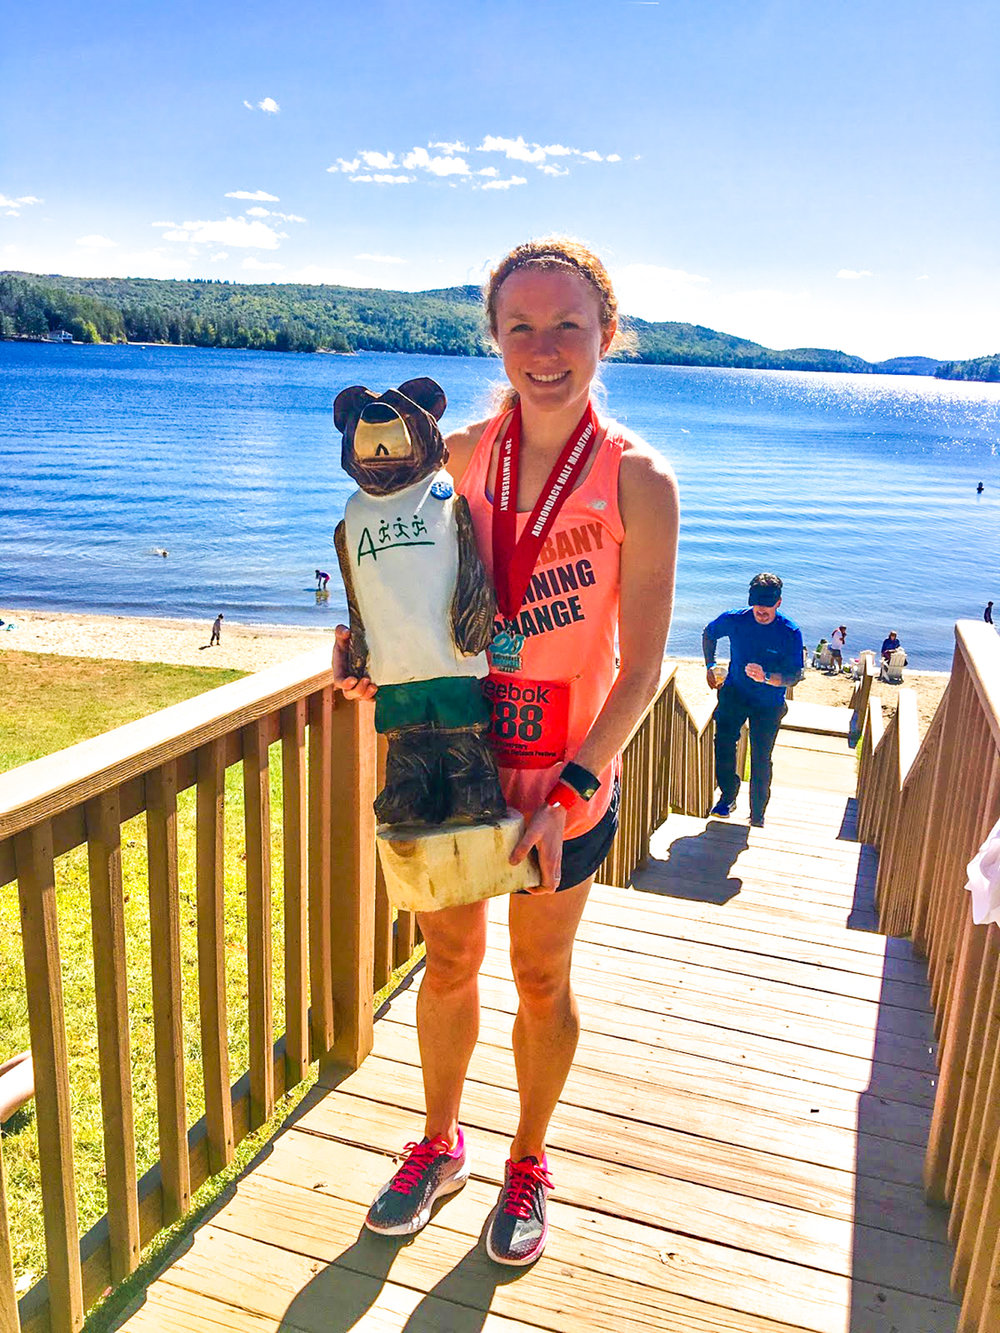 2016 Adirondack Half Marathon winner, Christine Coughlin of Latham, with her hand-carved Adirondack bear.